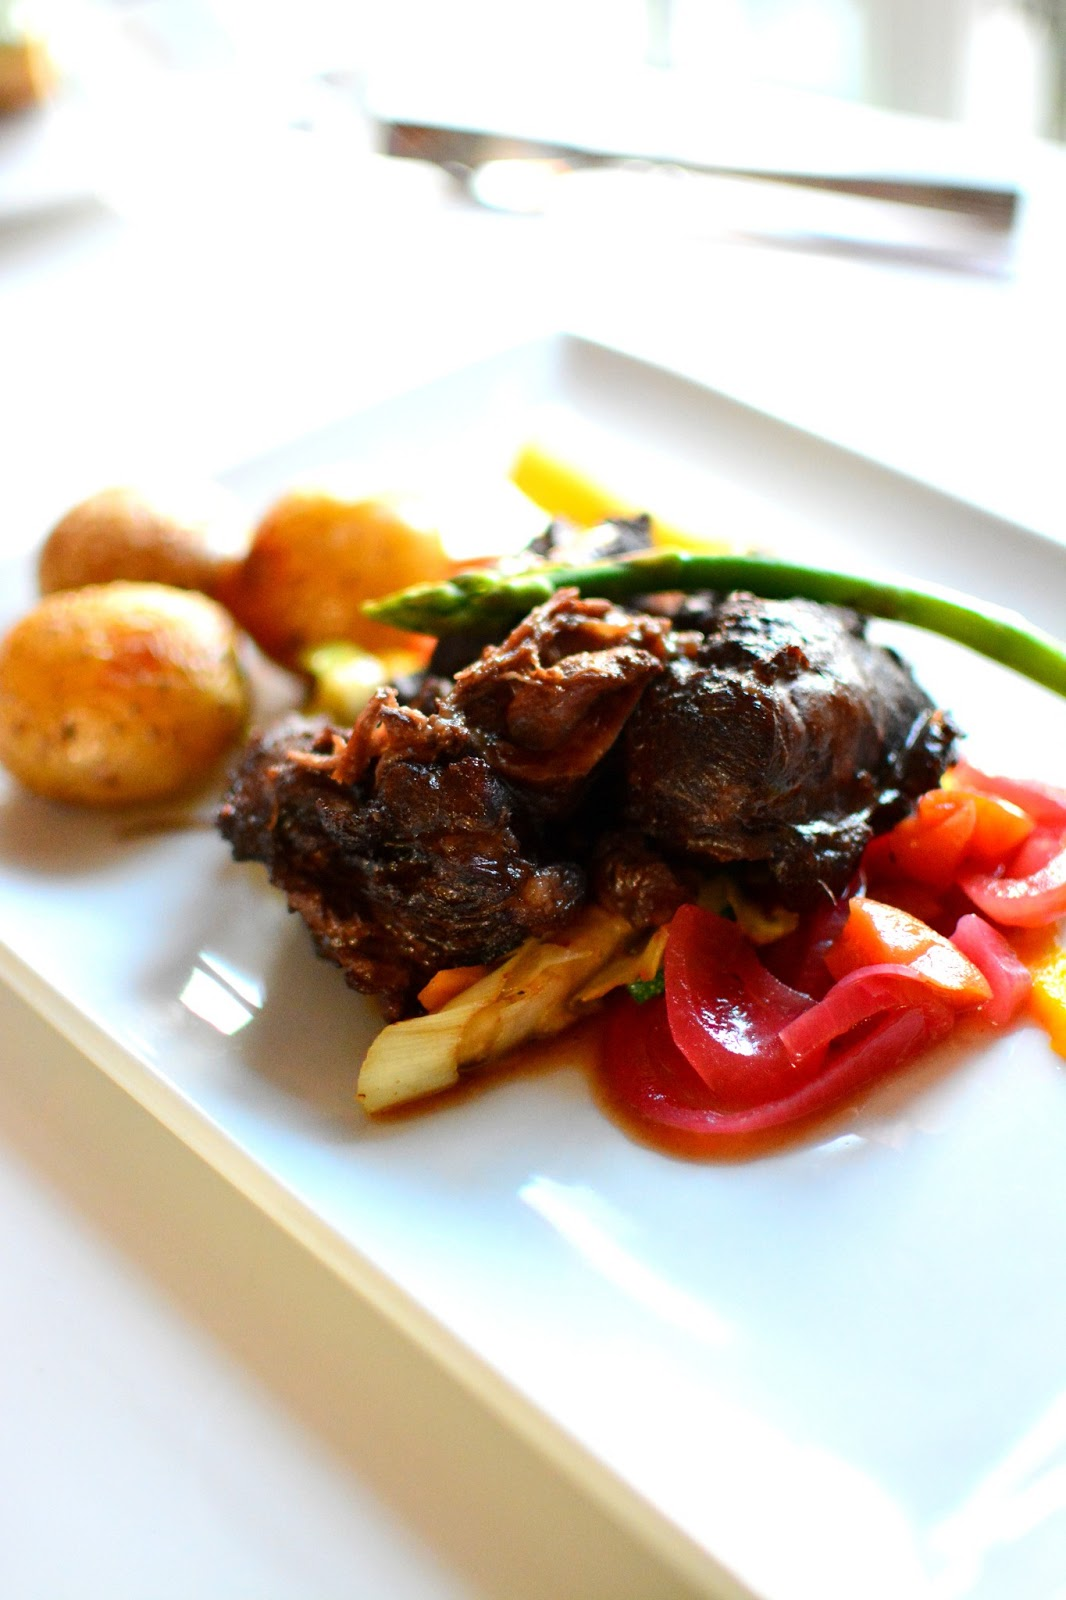 The braised pork cheeks with red onion and apricot saute, baked root ...